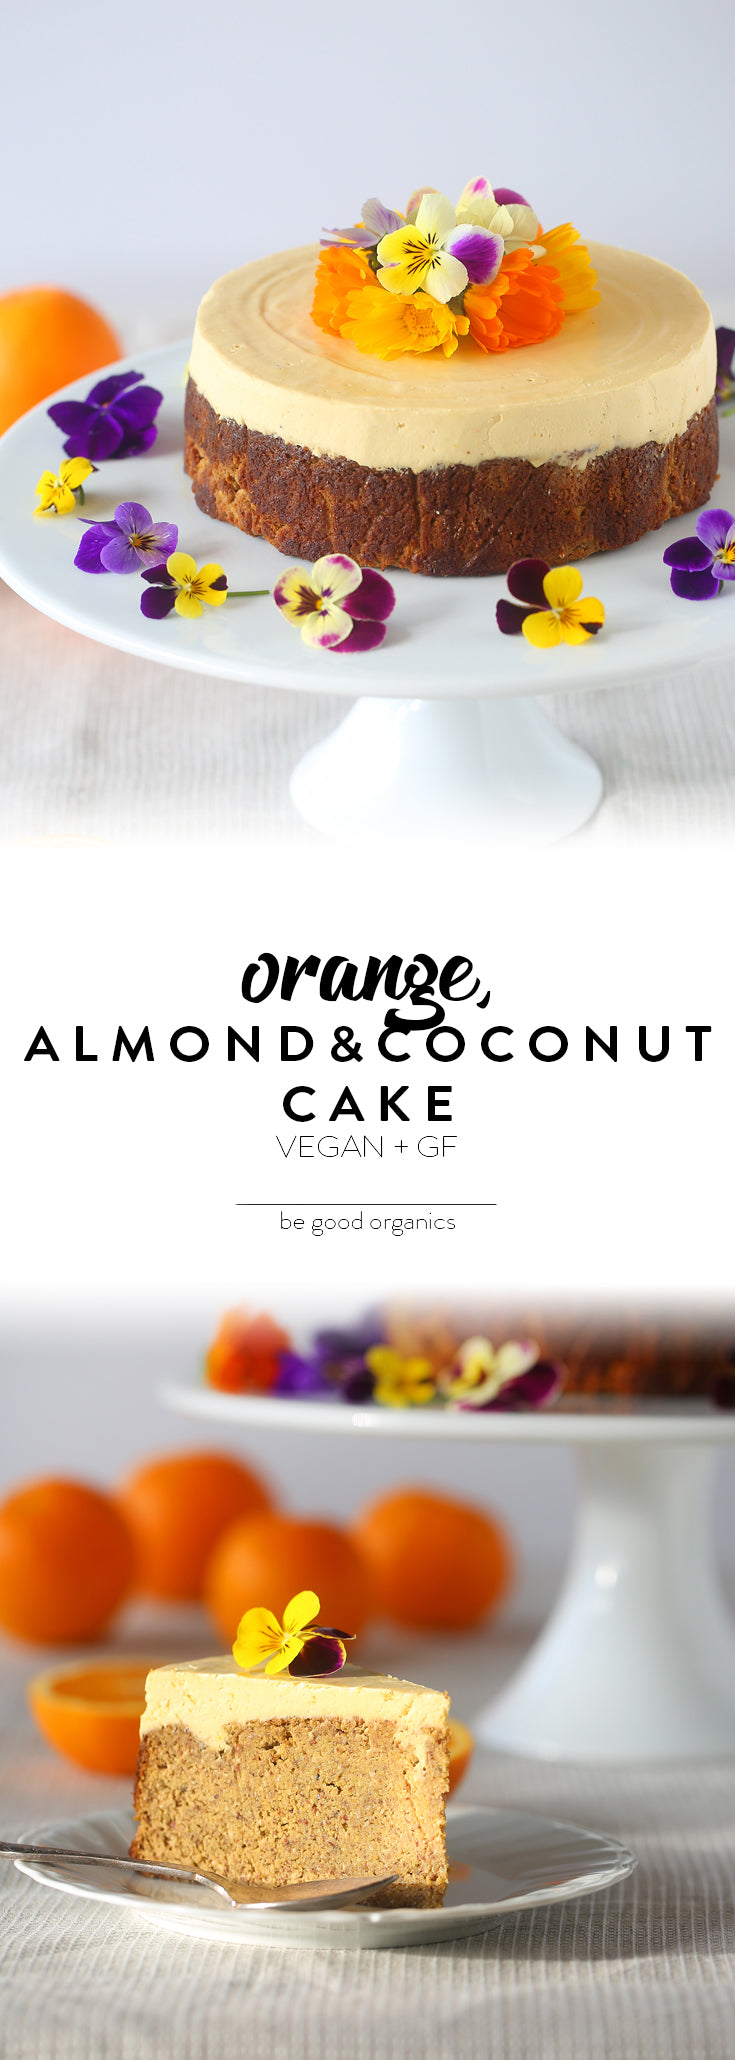 Orange, Almond & Coconut Cake - Be Good Organics